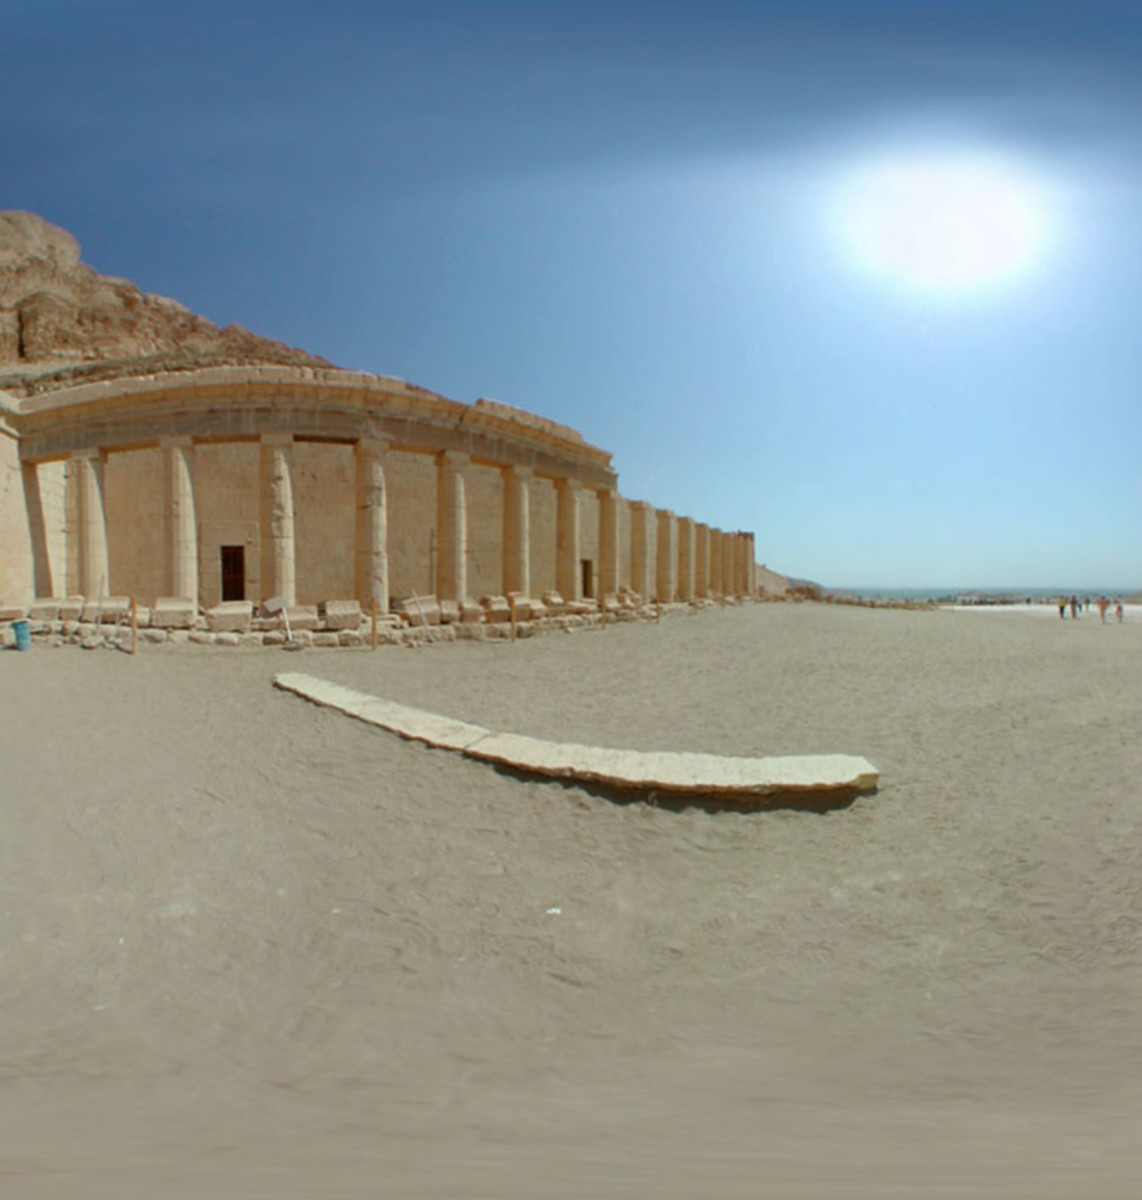 Hatshepsut's mortuary temple at Deir-le-Bahri, designed by Senemut, her vizier, and it was the first complex built on the site she choose, which would become the Valley of the Kings